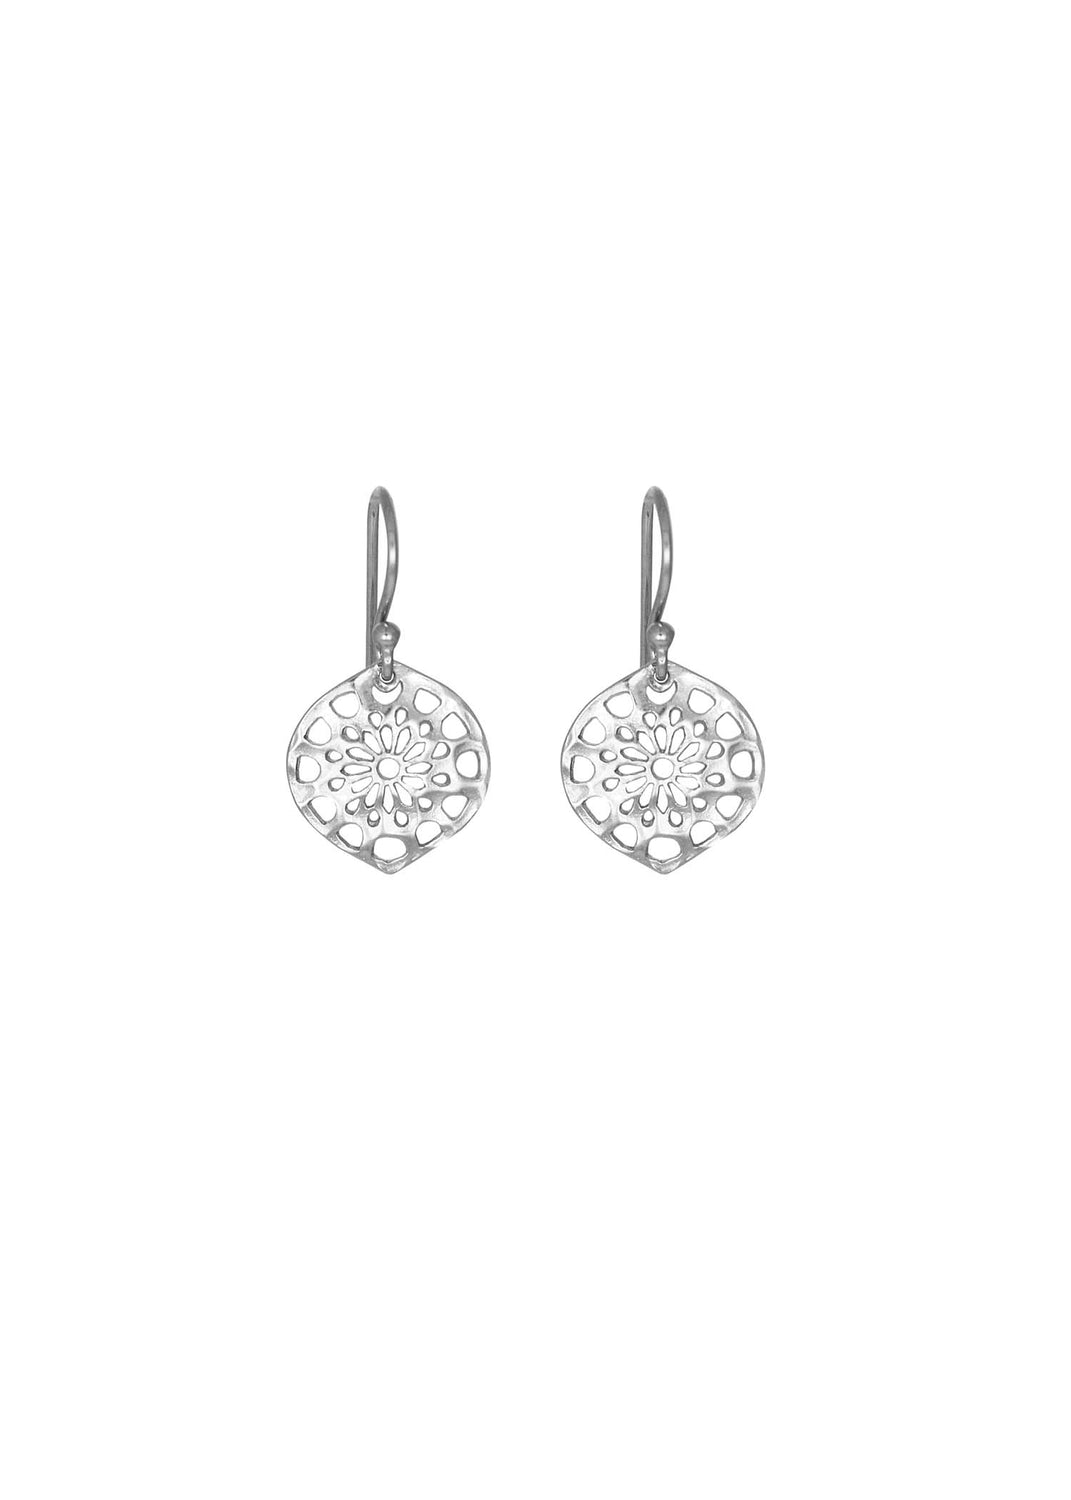 Nicole Fendel Alora Small Earring - The Artisan Storeroom